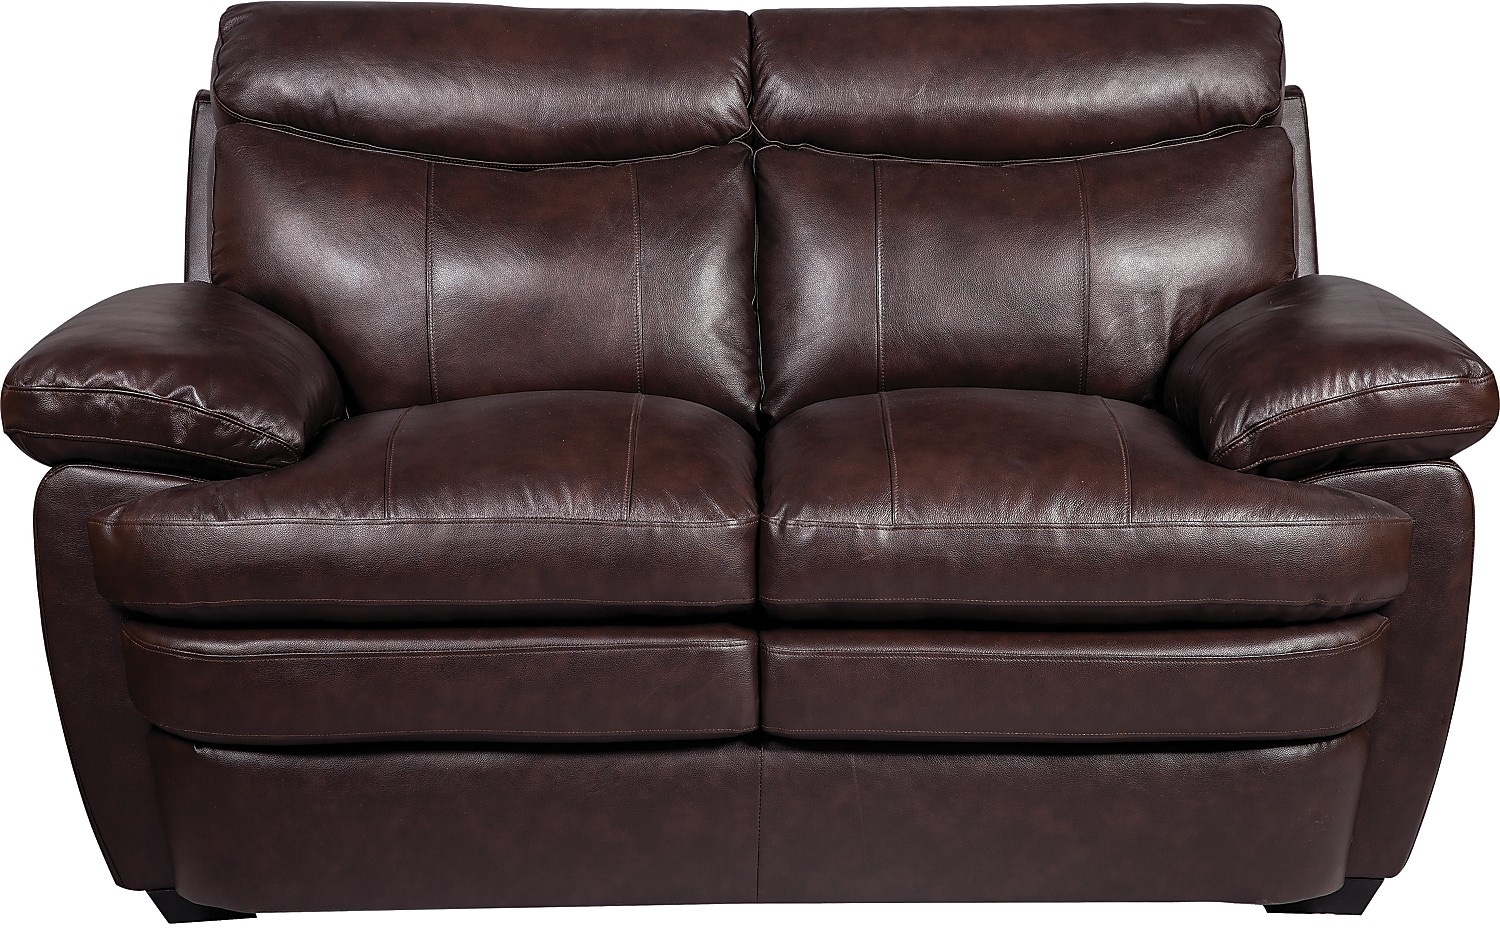 Living Room Furniture - Mildenhall Loveseat